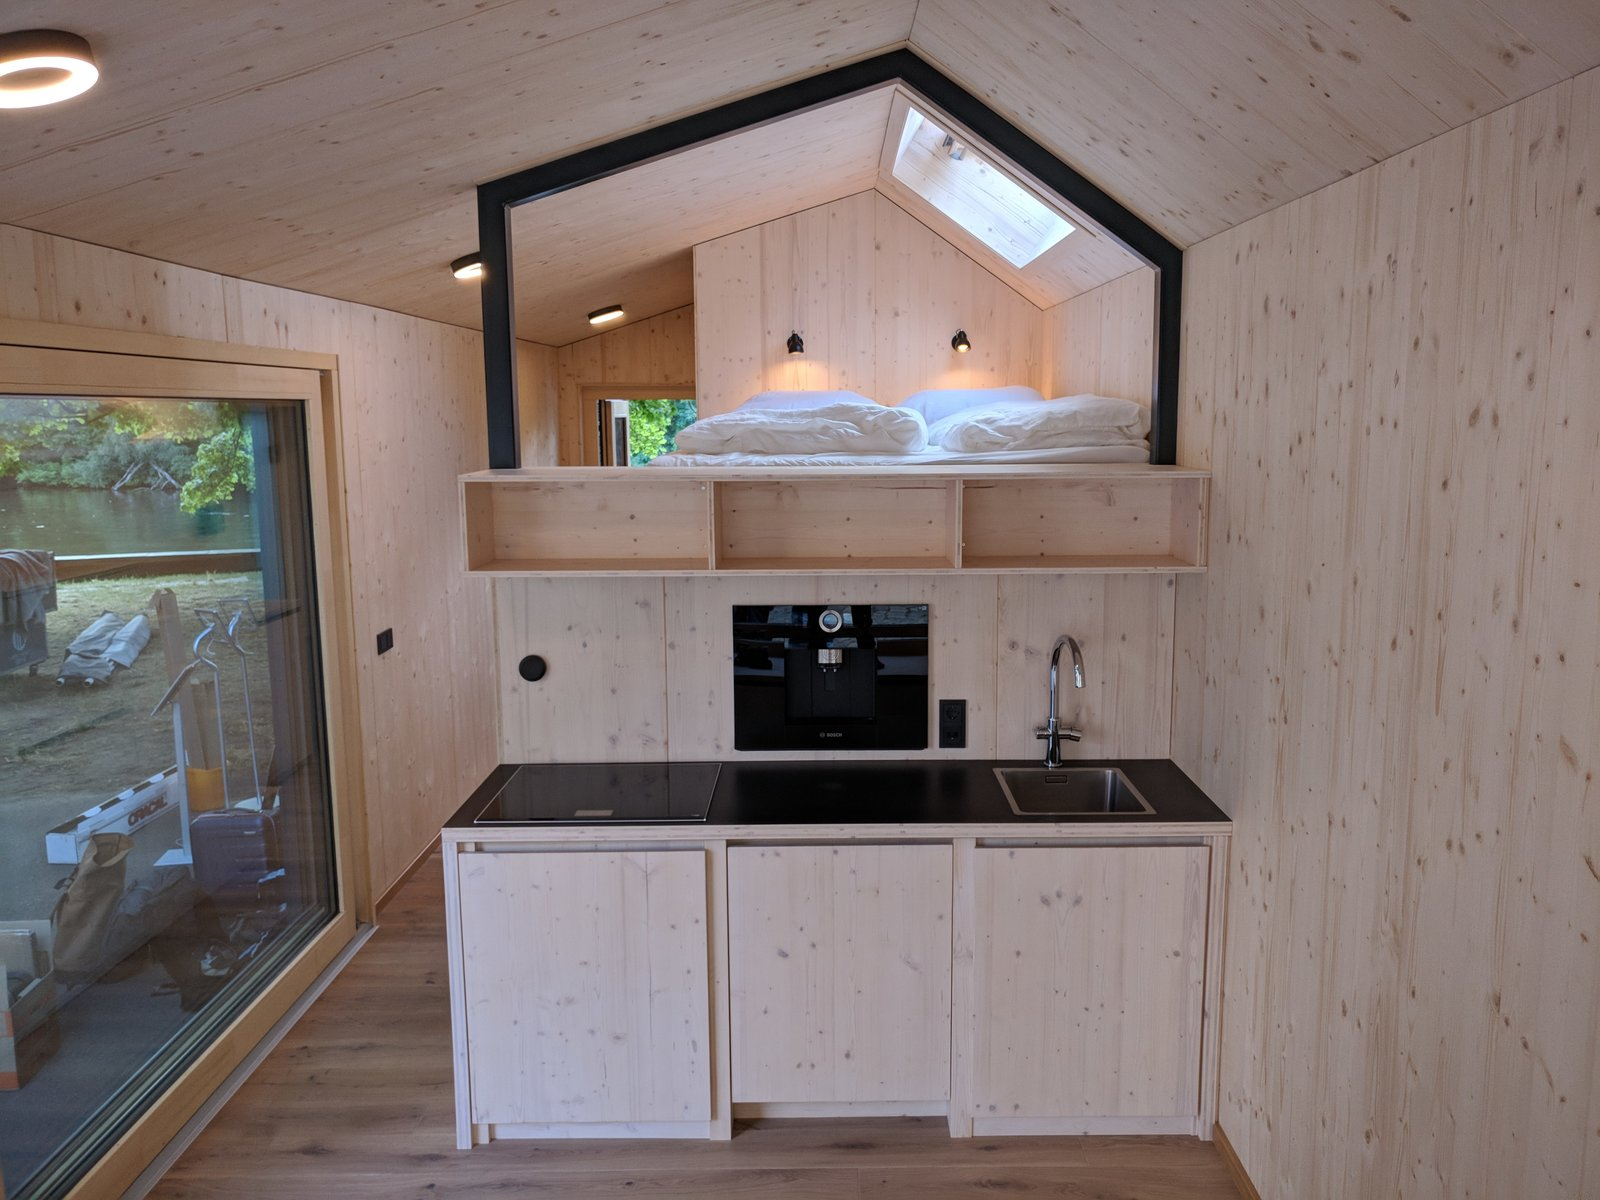 """Kitchen, Wood, Light Hardwood, Refrigerator, Drop In, Cooktops, and Wood The kitchenette includes a fridge, laundry machine, an integrated coffee machine, and a regular-size cooktop.  Best Kitchen Refrigerator Wood Drop In Photos from A Network of Prefab Tiny Homes Allows Users to """"Pay as You Live"""""""